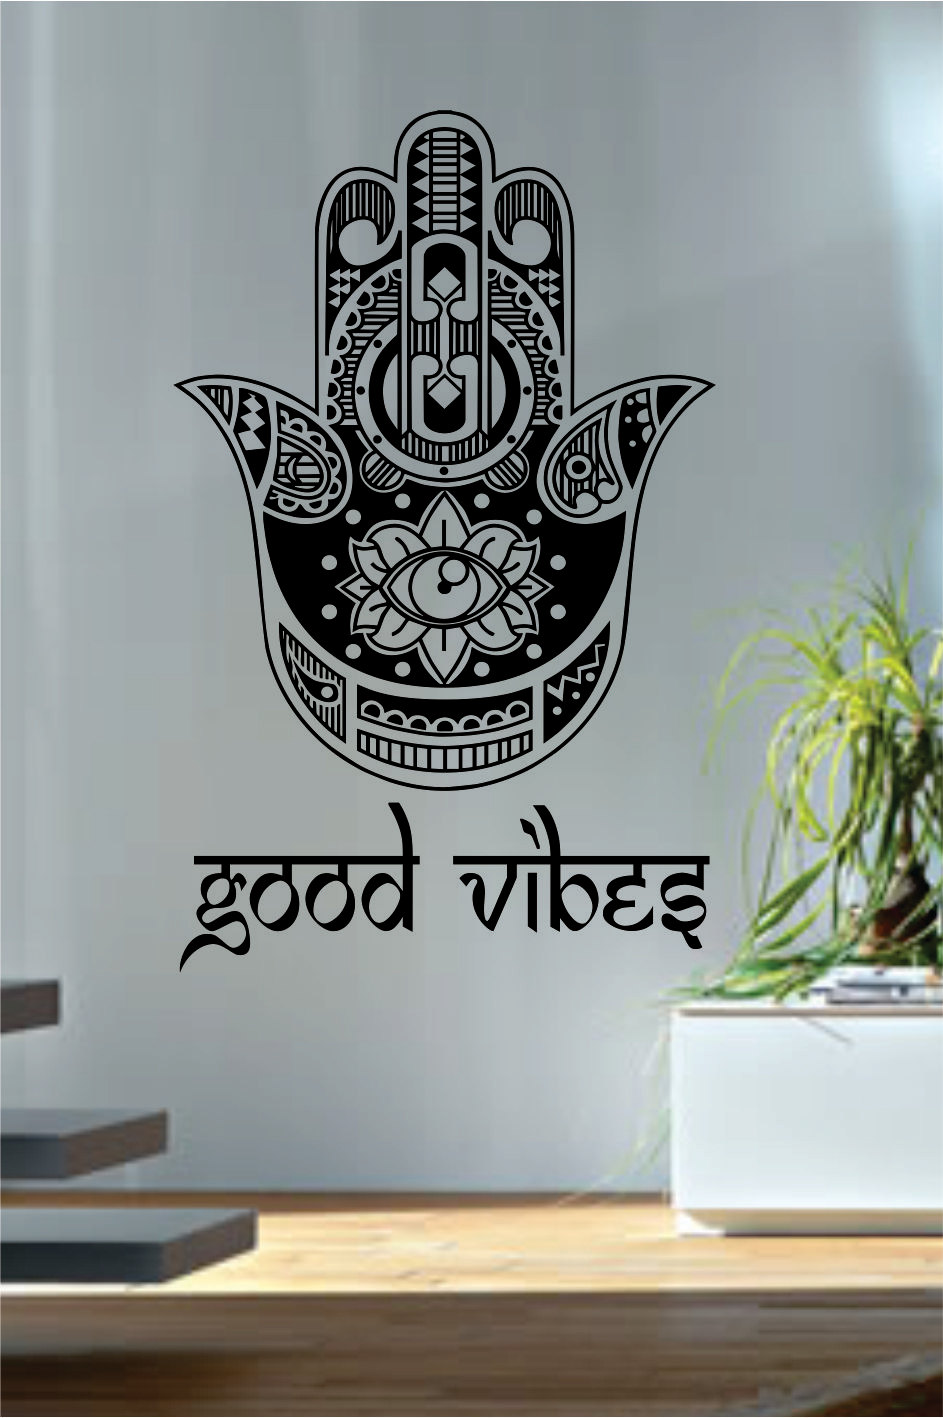 Perfect Good Vibes Hamsa Wall Decals Fatima Hand Quotes Wall Decor Vinyl Stickers  Yoga Meditation Decor Geometric Wall TattooS 510